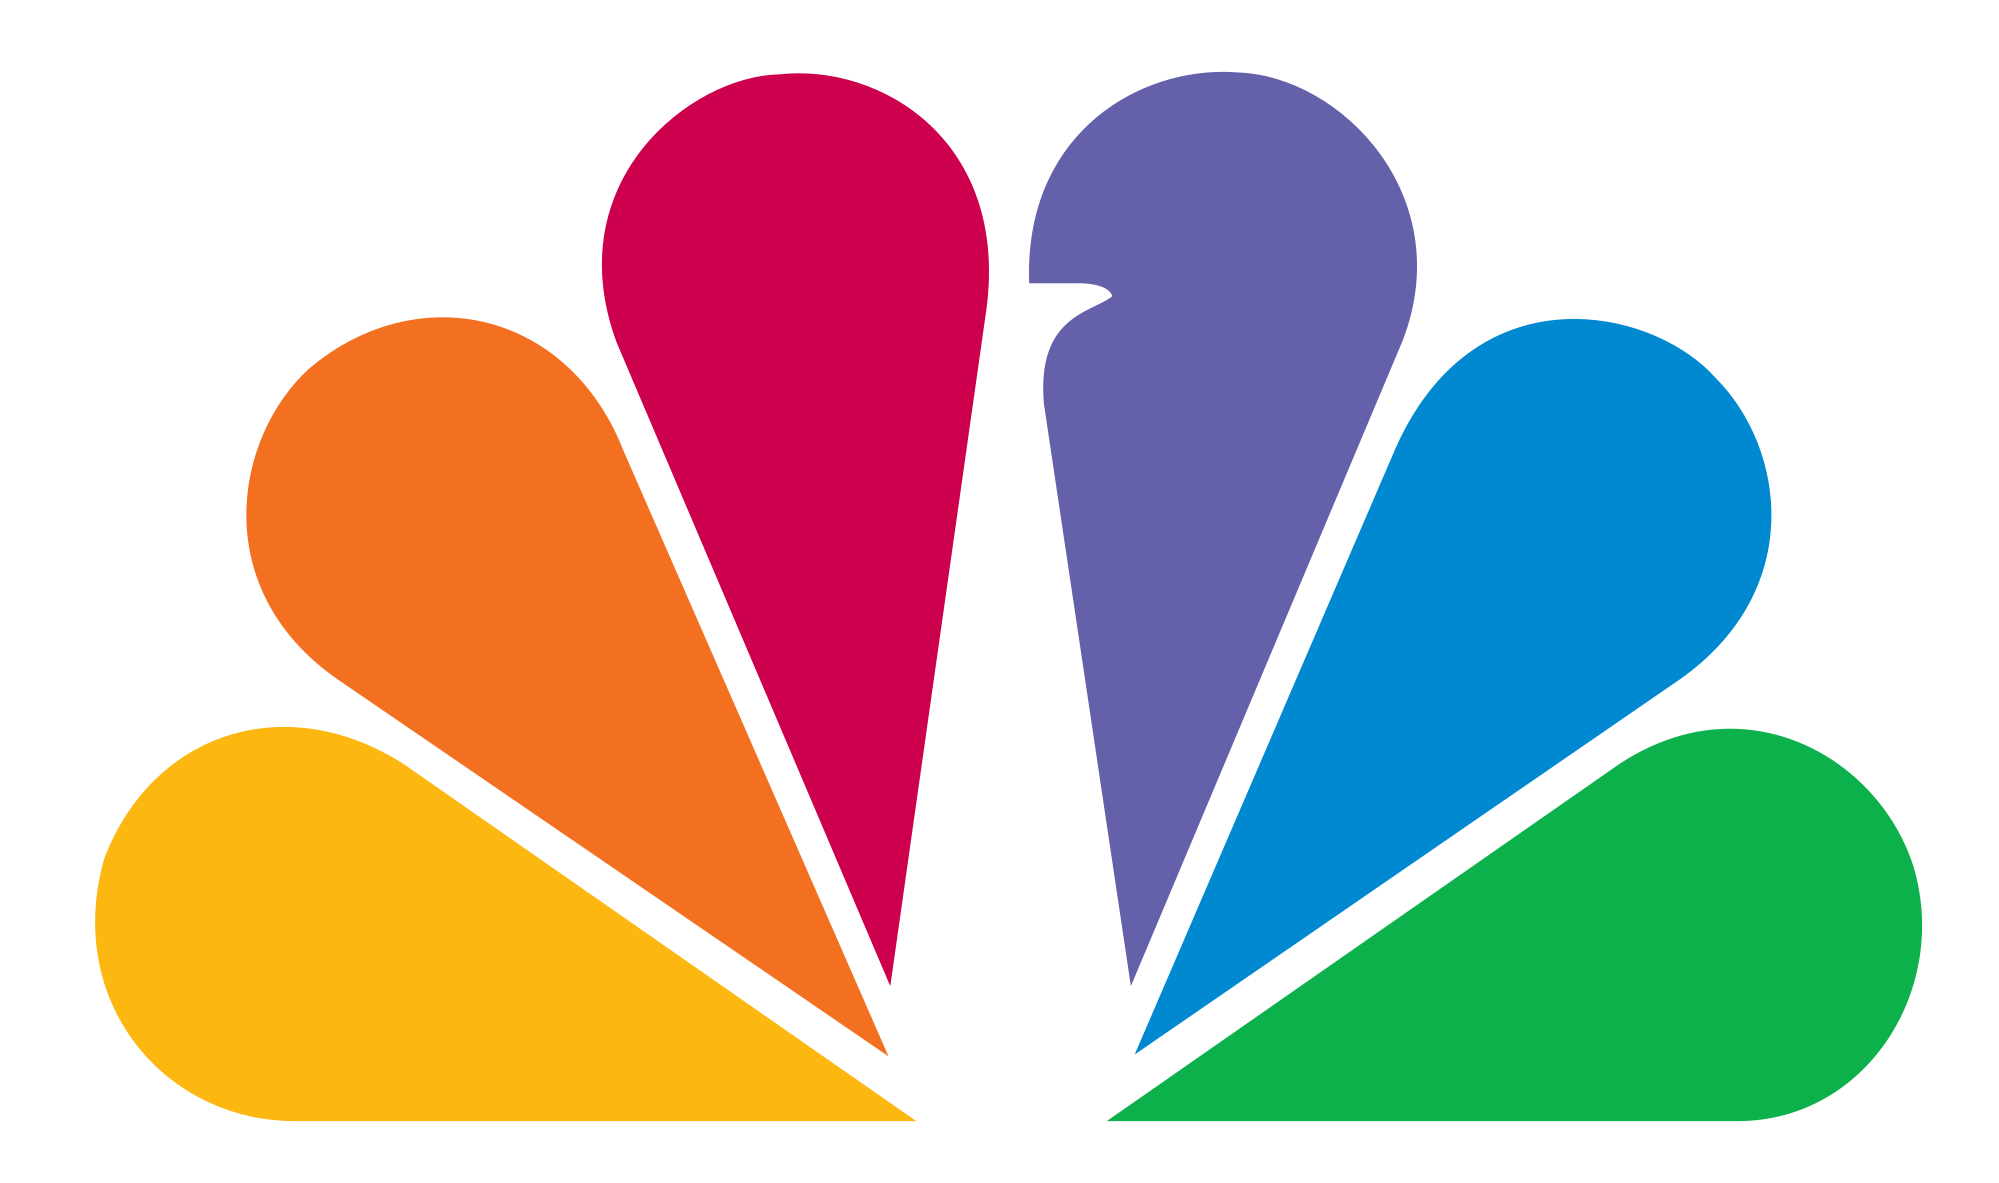 play games nbc png logo #4534